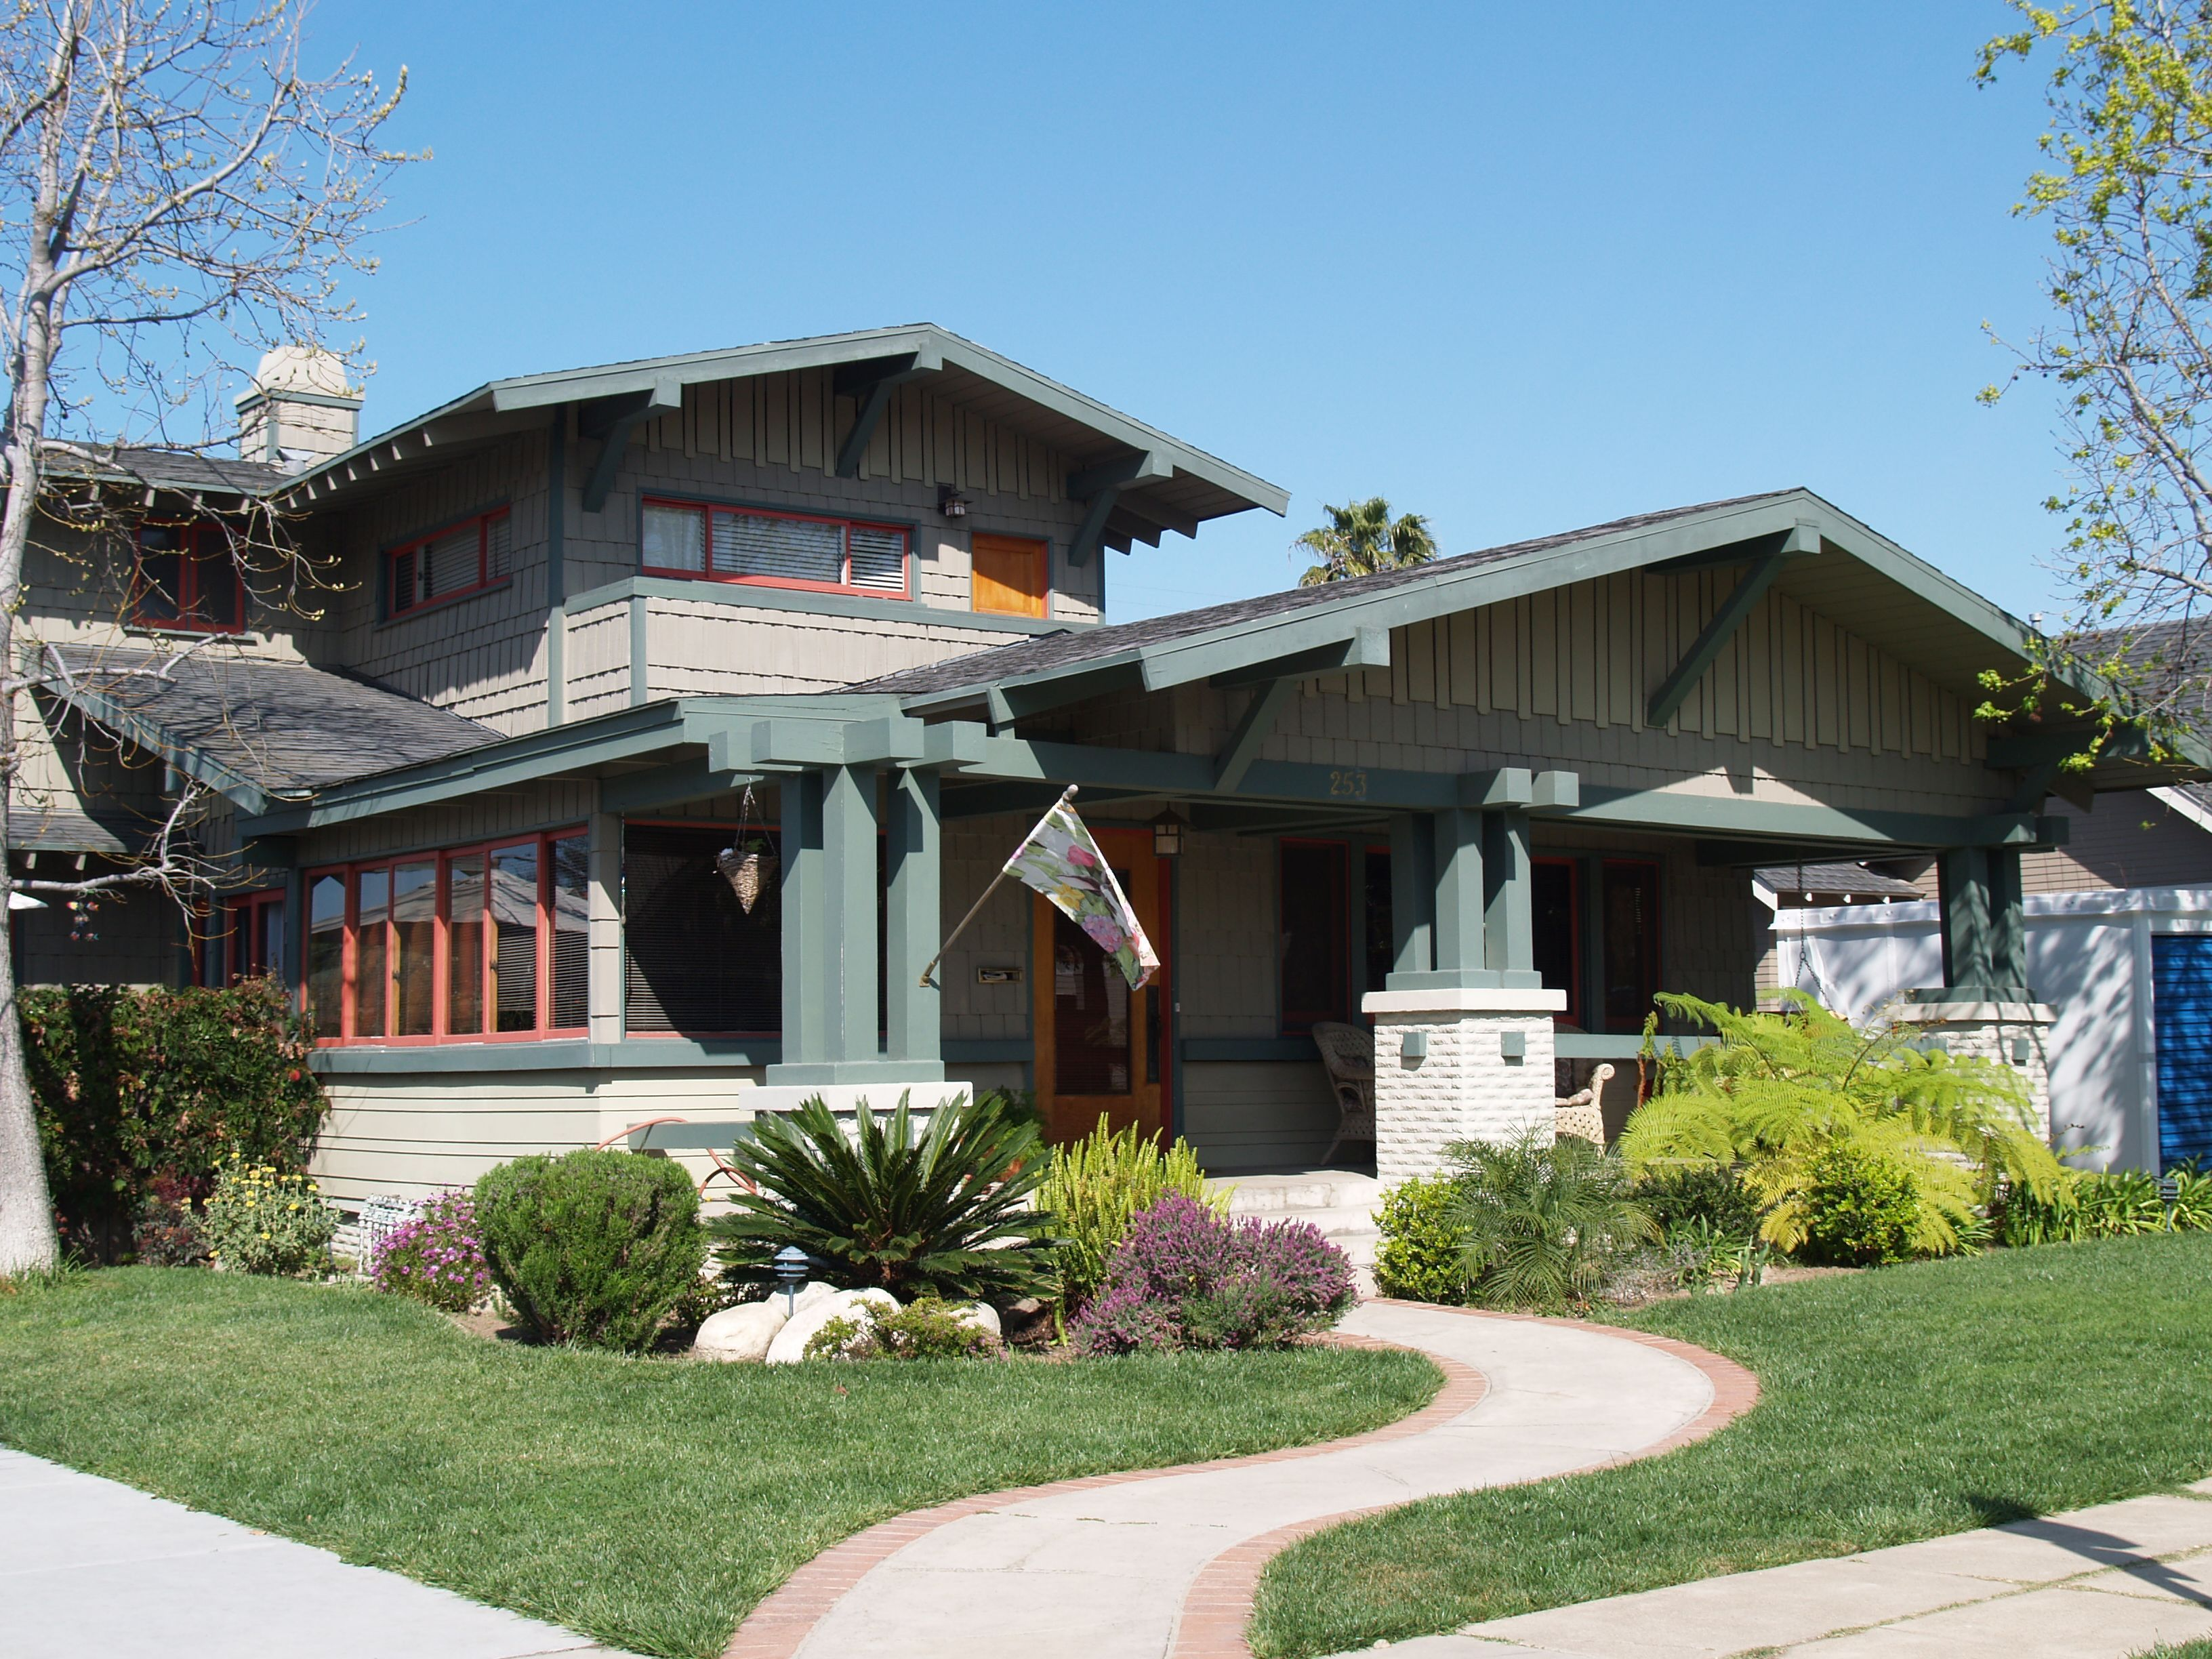 The Bungalow Girl Long Beach S Specialist Arts And Crafts House Plans